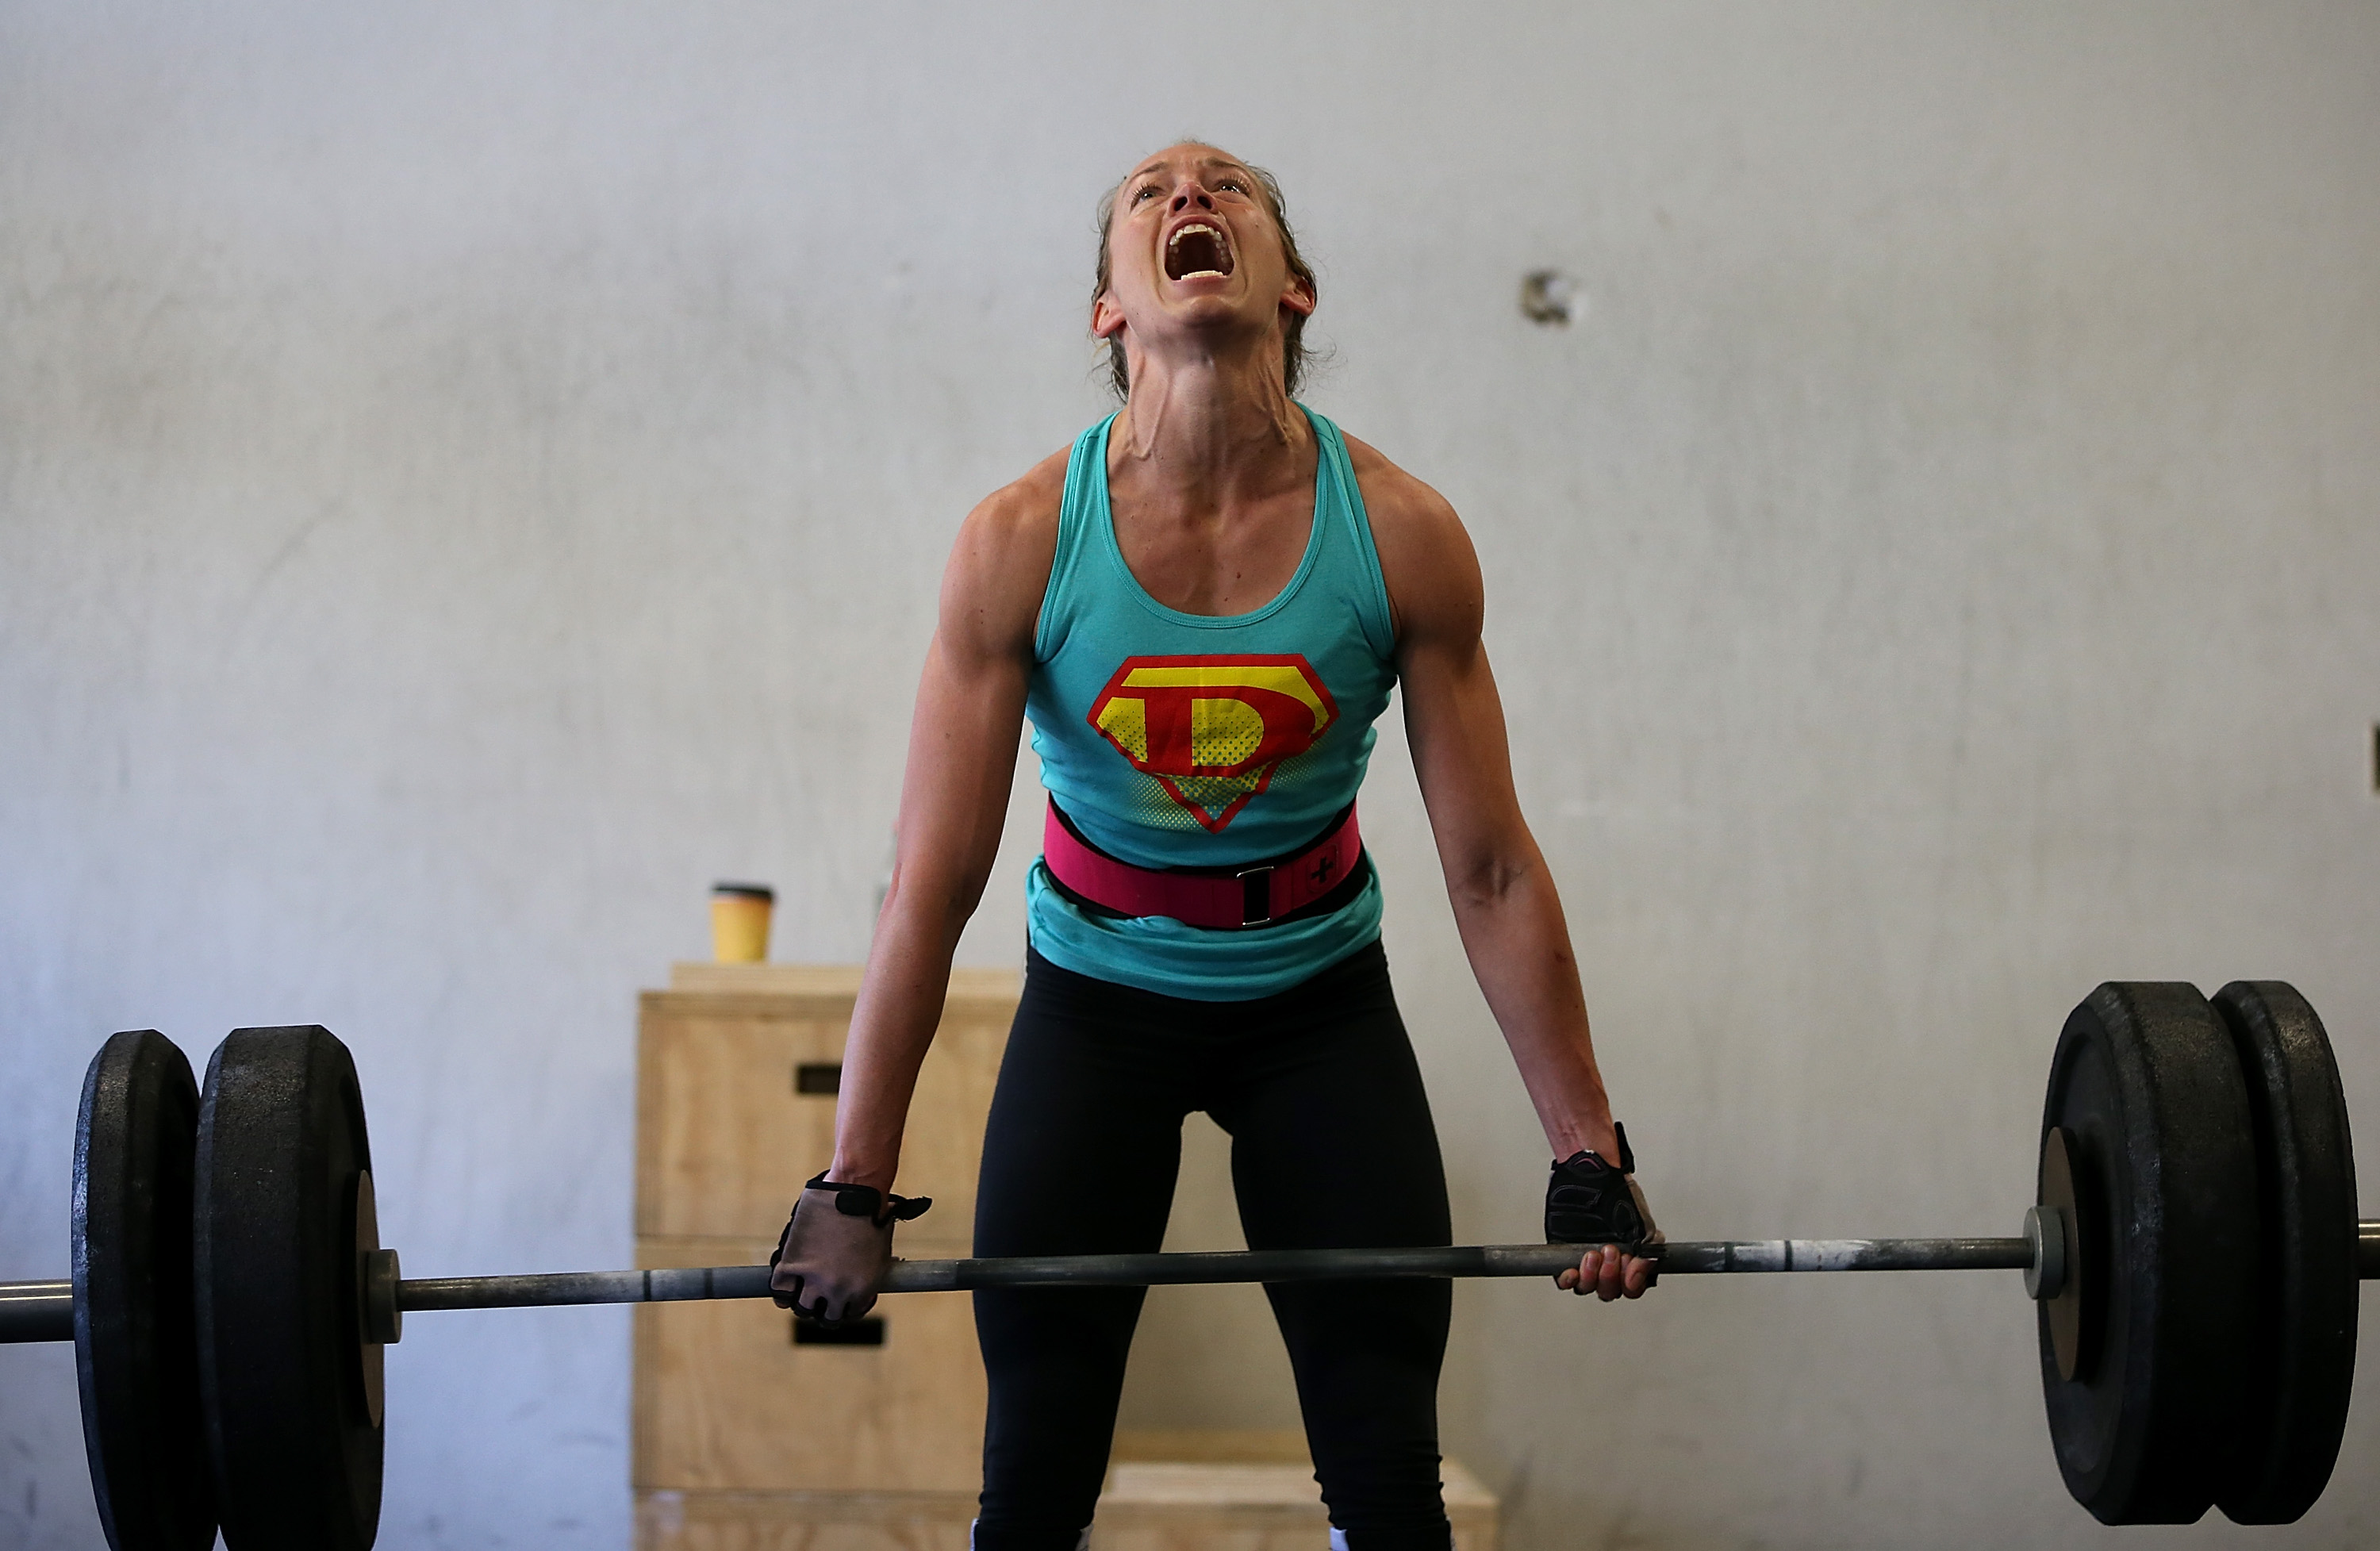 """SAN ANSELMO, CA - MARCH 14: Lita Collins does a deadlift during a CrossFit workout at Ross Valley CrossFit on March 14, 2014 in San Anselmo, California. CrossFit, a high intensity workout regimen that is a constantly varied mix of aerobic exercise, gymnastics and Olympic weight lifting, is one of the fastest growing fitness programs in the world. The grueling cult-like core strength and conditioning program is popular with firefighters, police officers, members of the military and professional athletes. Since its inception in 2000, the number of CrossFit affiliates, or """"boxes"""" has skyrocketed to over 8,500 worldwide with more opening every year. (Photo by Justin Sullivan/Getty Images)"""